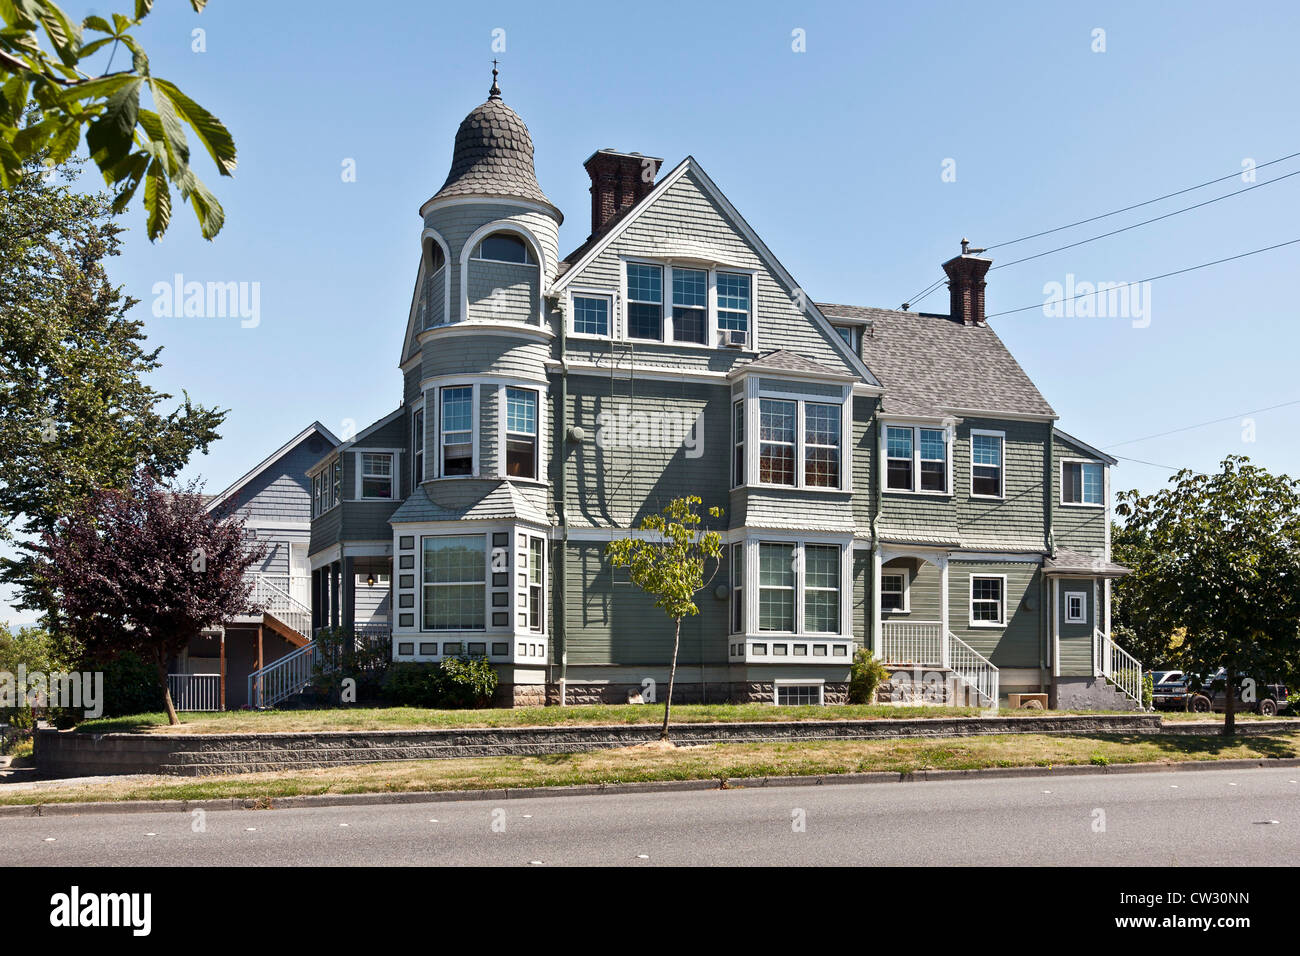 elegant old painted wood shingle Victorian house with bay windows & bell shaped cupola at corner Bellingham - Stock Image